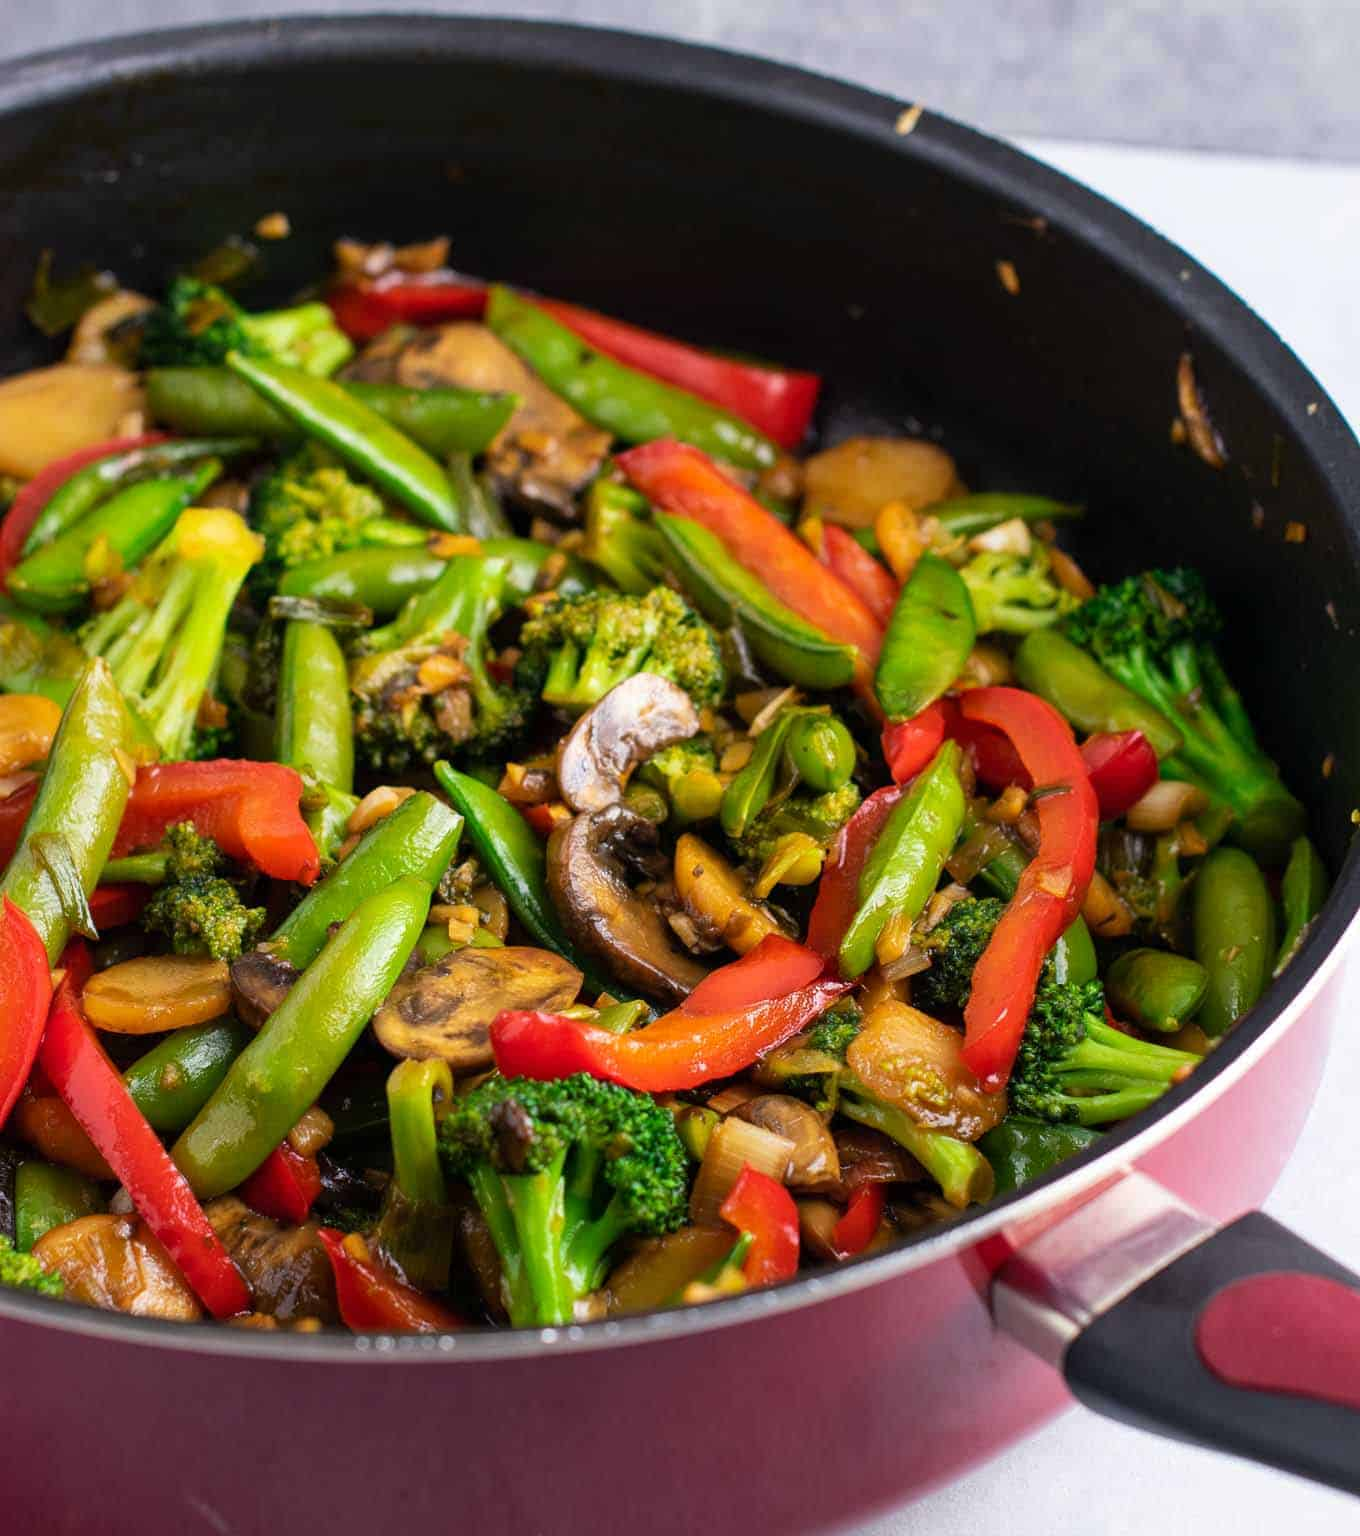 Stir Fry Vegetables Recipe